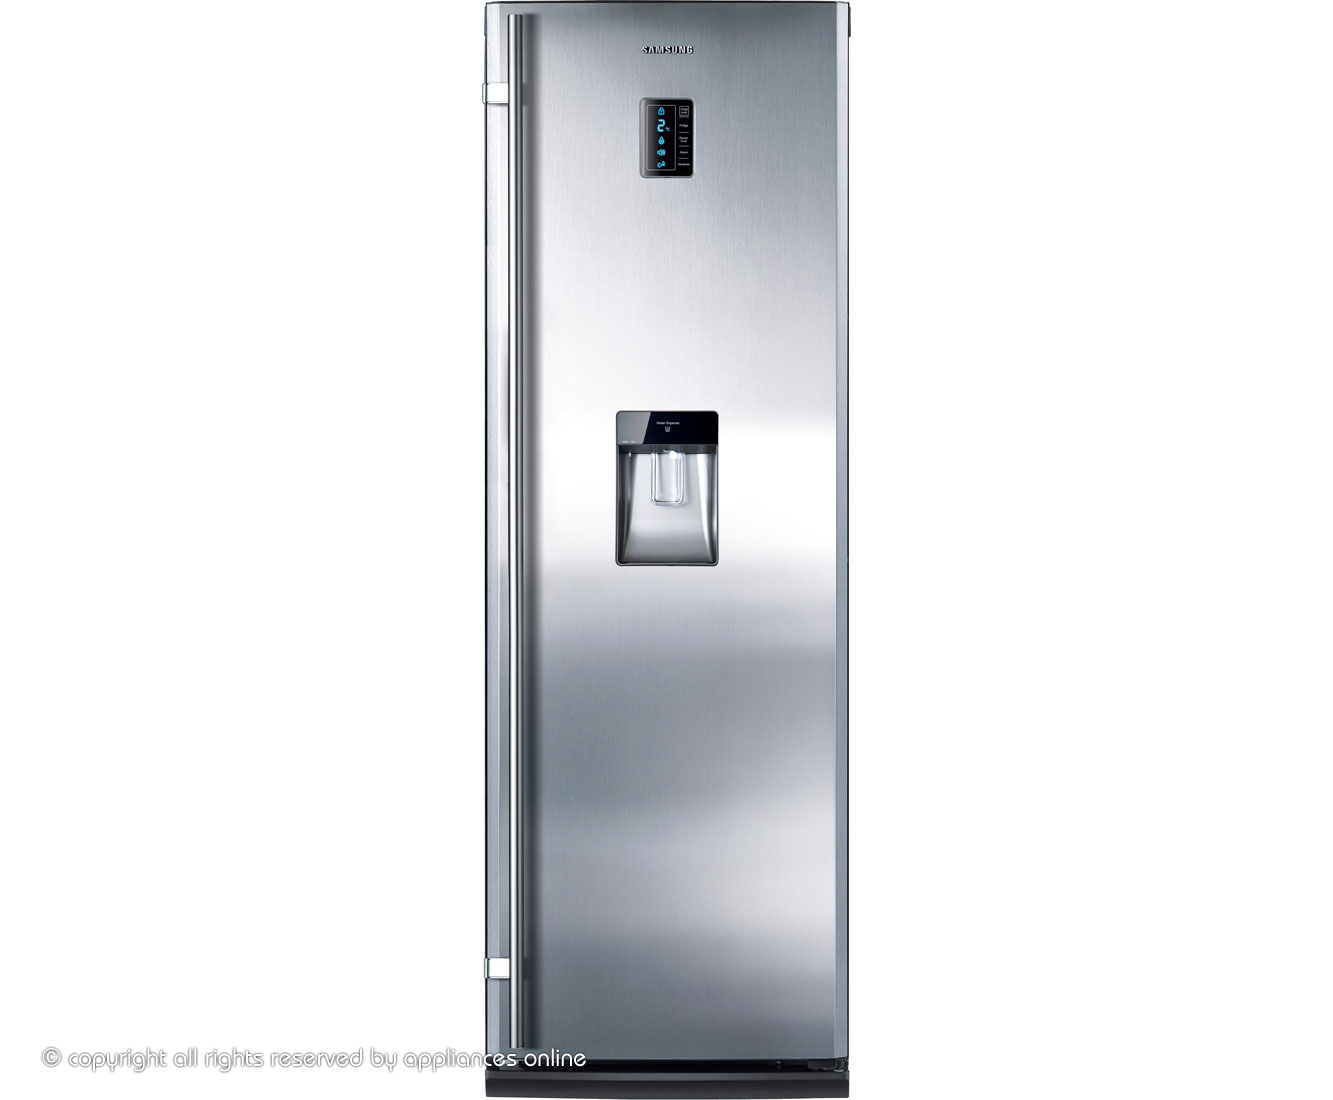 Samsung RR82PDRS Fridge - Stainless Steel